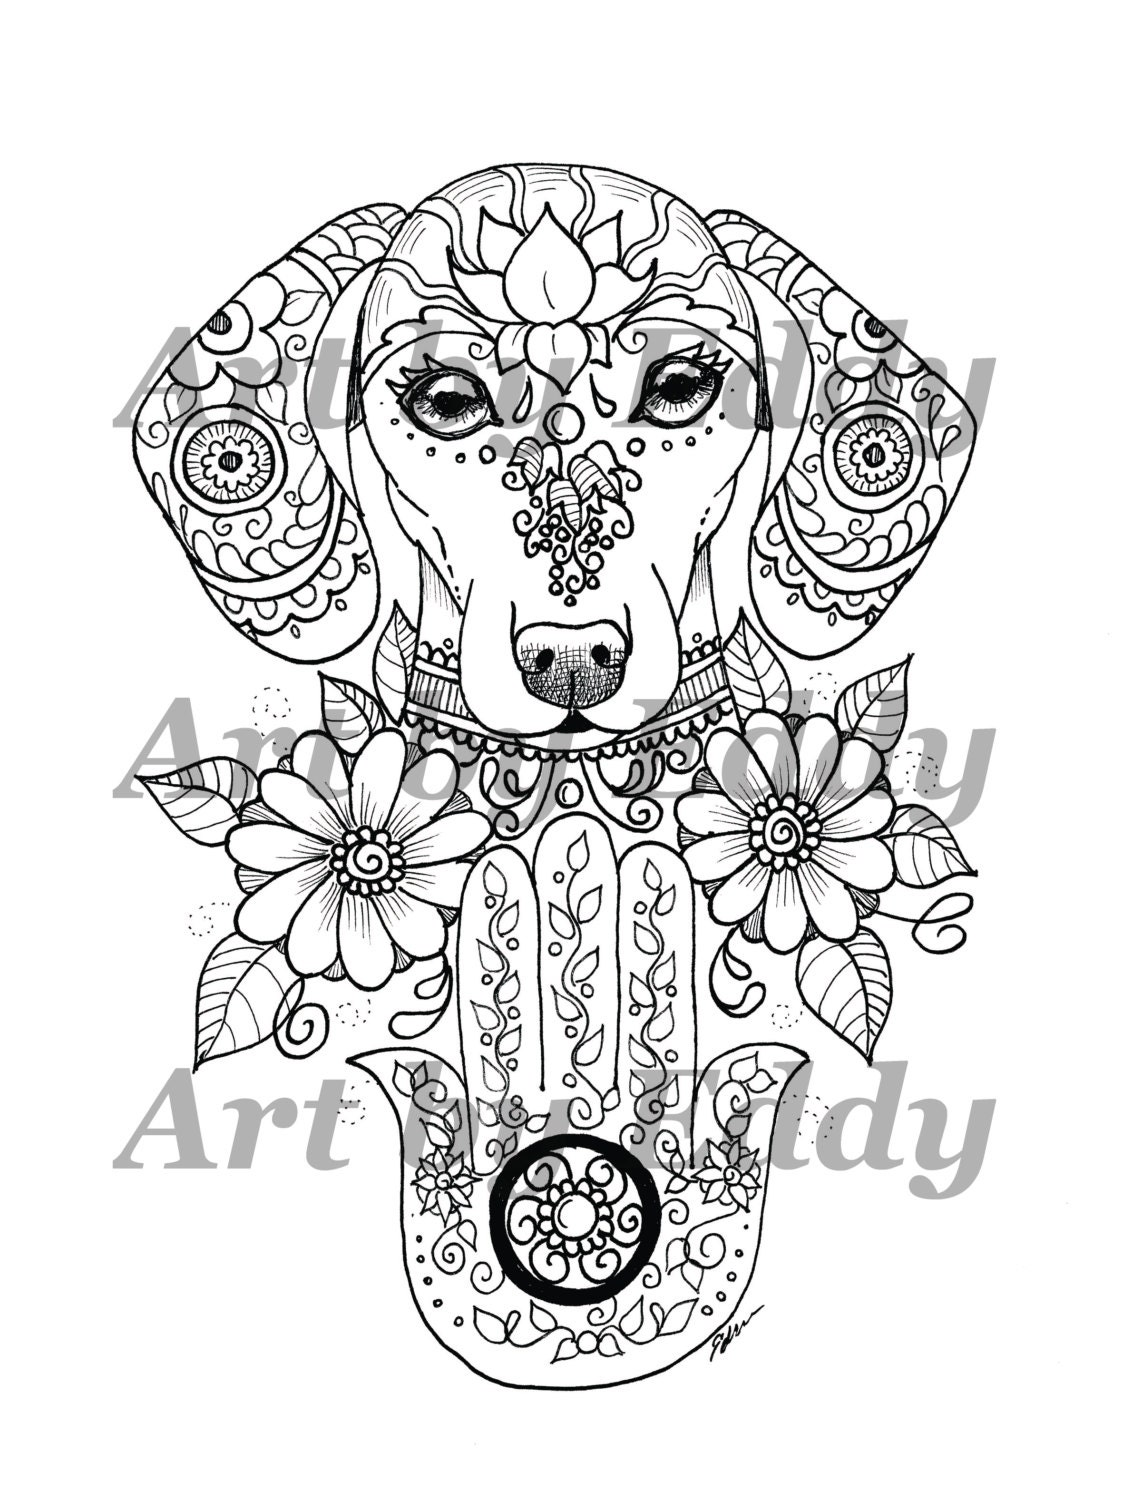 Art of Dachshund Single Coloring Page Hamsa Palm Doxie | Etsy